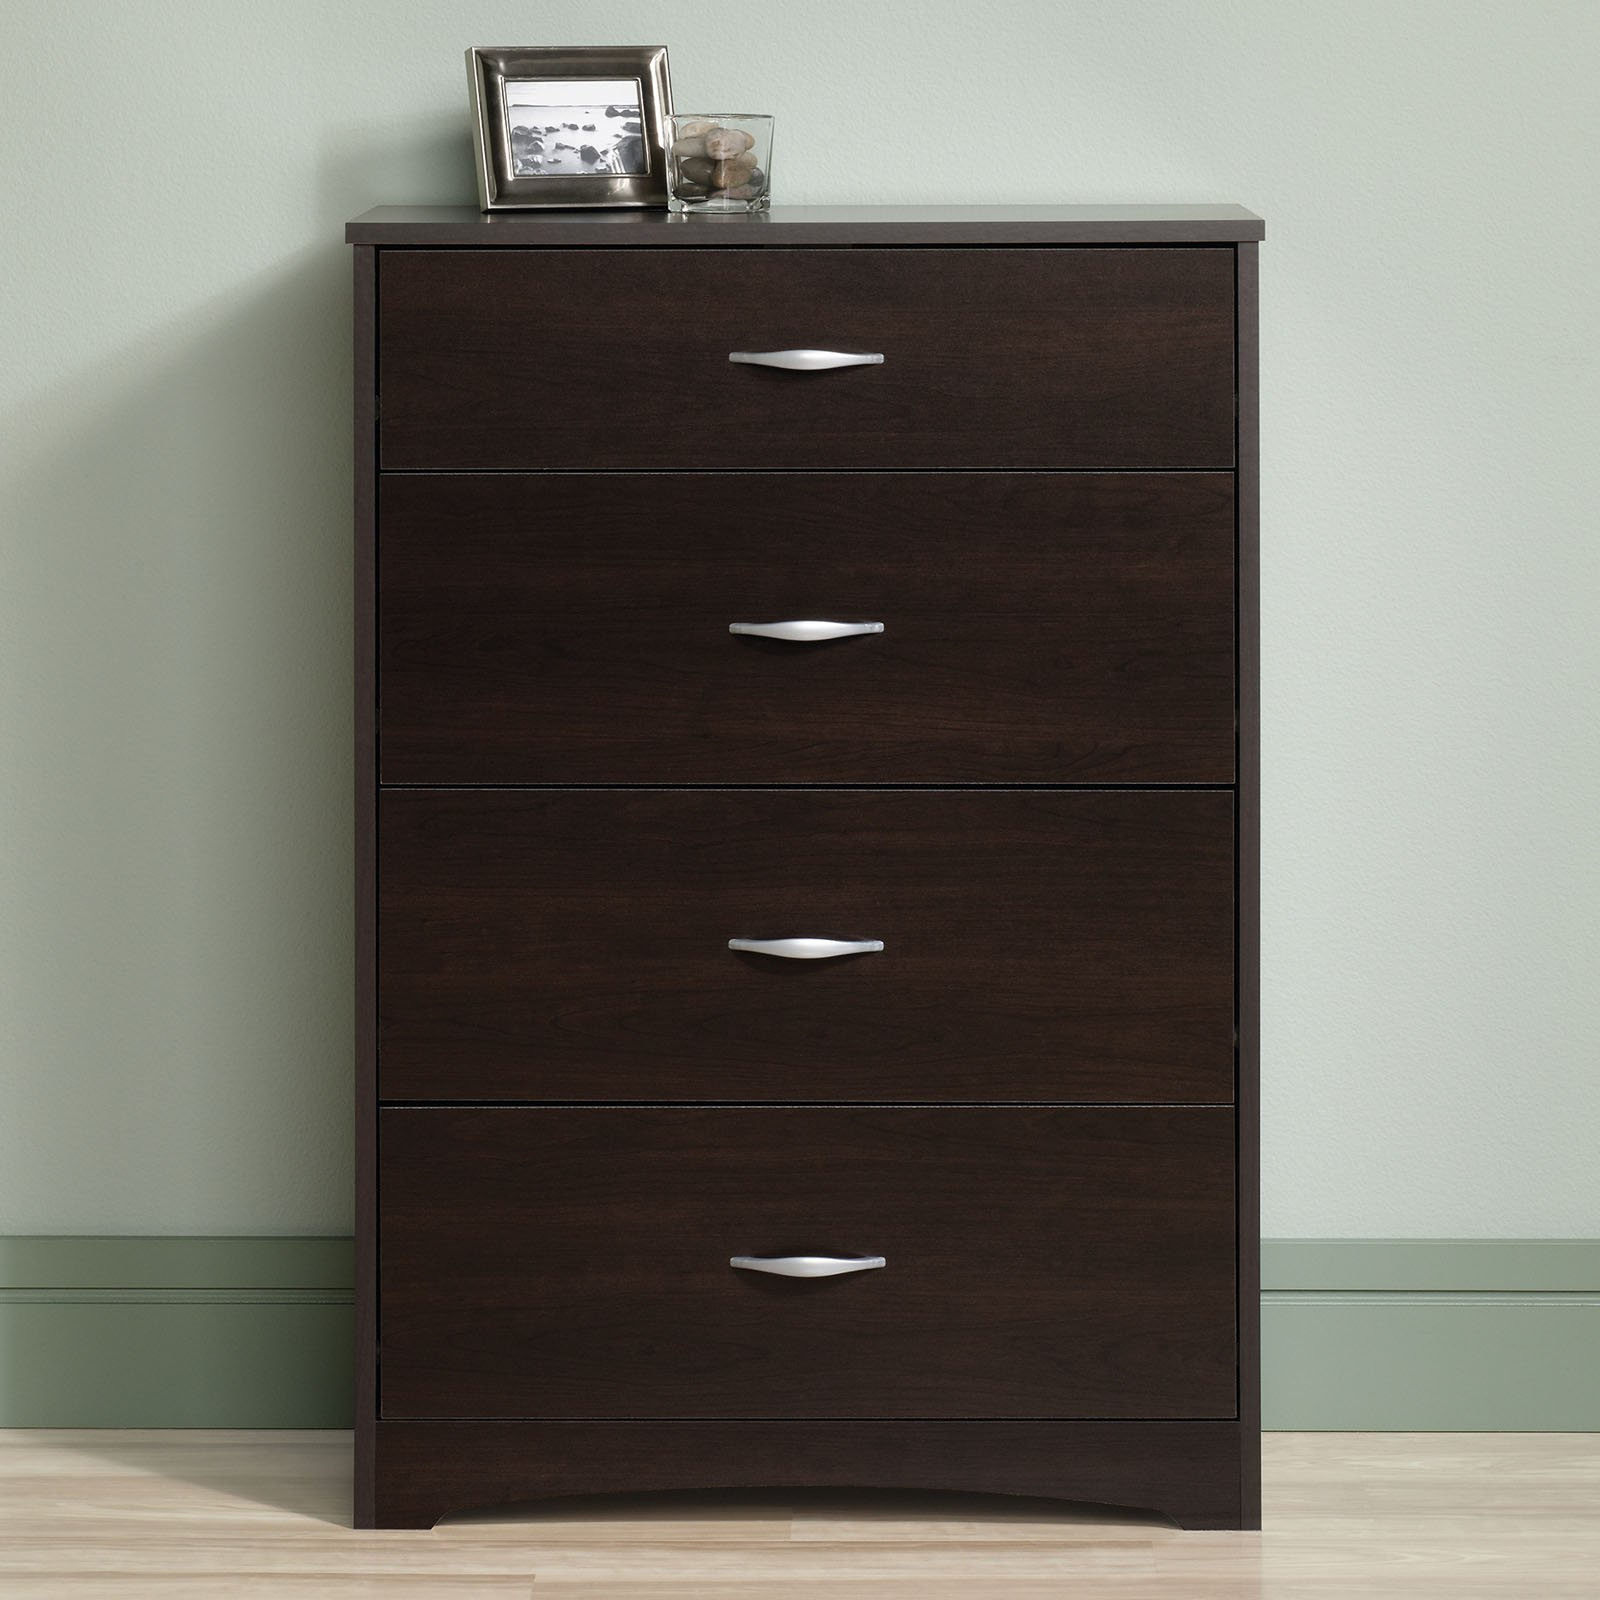 Sauder Beginnings 4-Drawer Dresser, Cinnamon Cherry by Sauder Woodworking